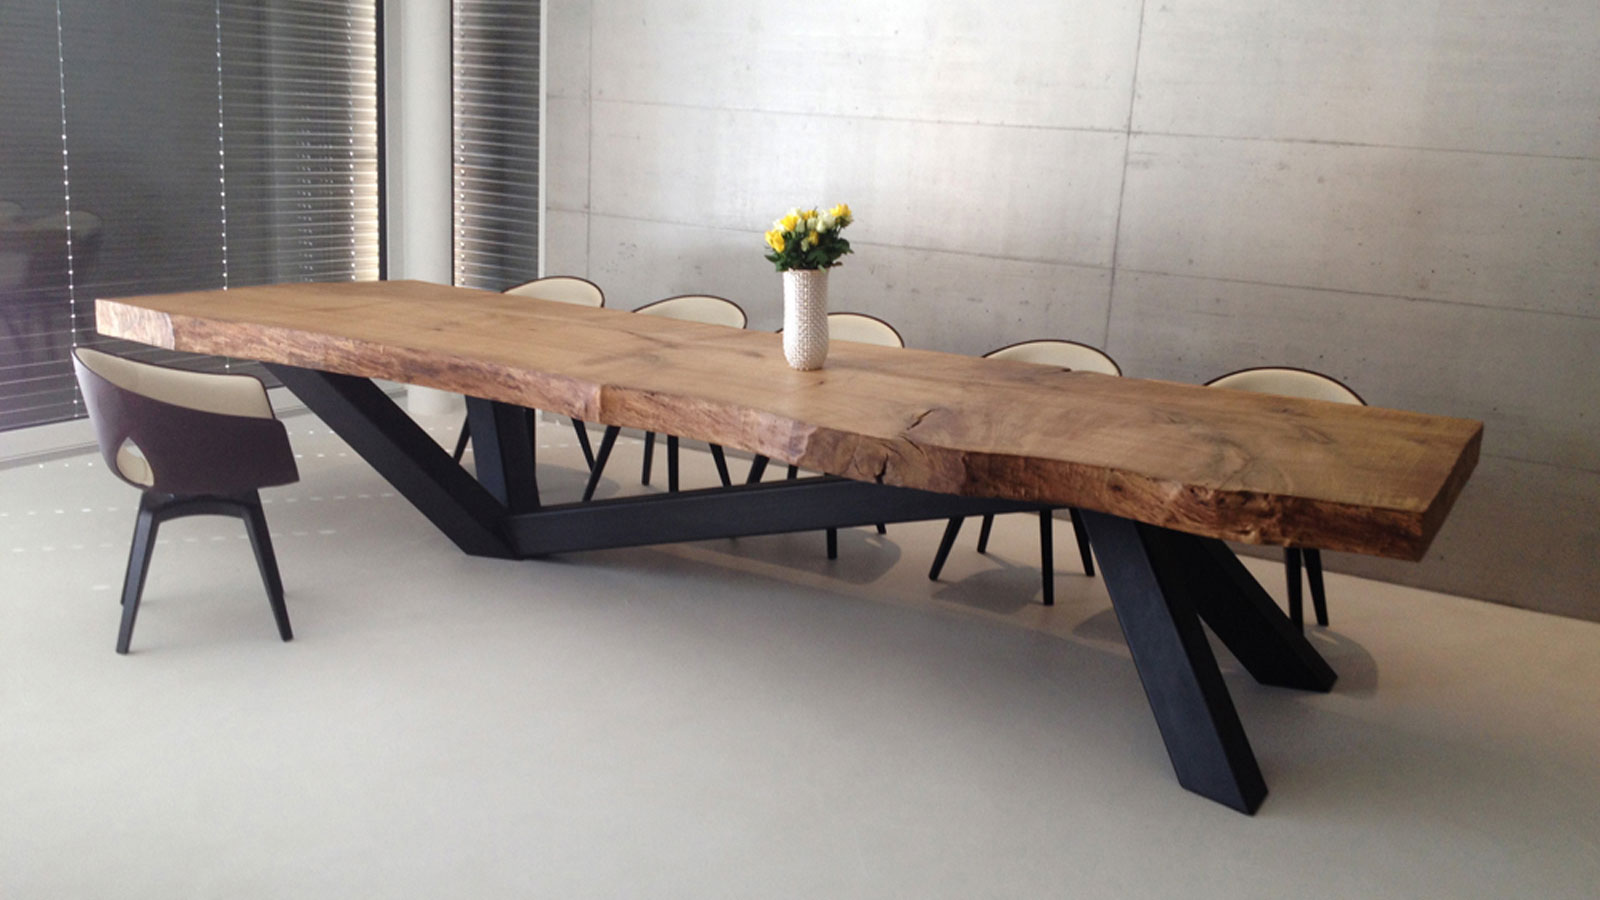 Solid wood table with metal base by RH-Design